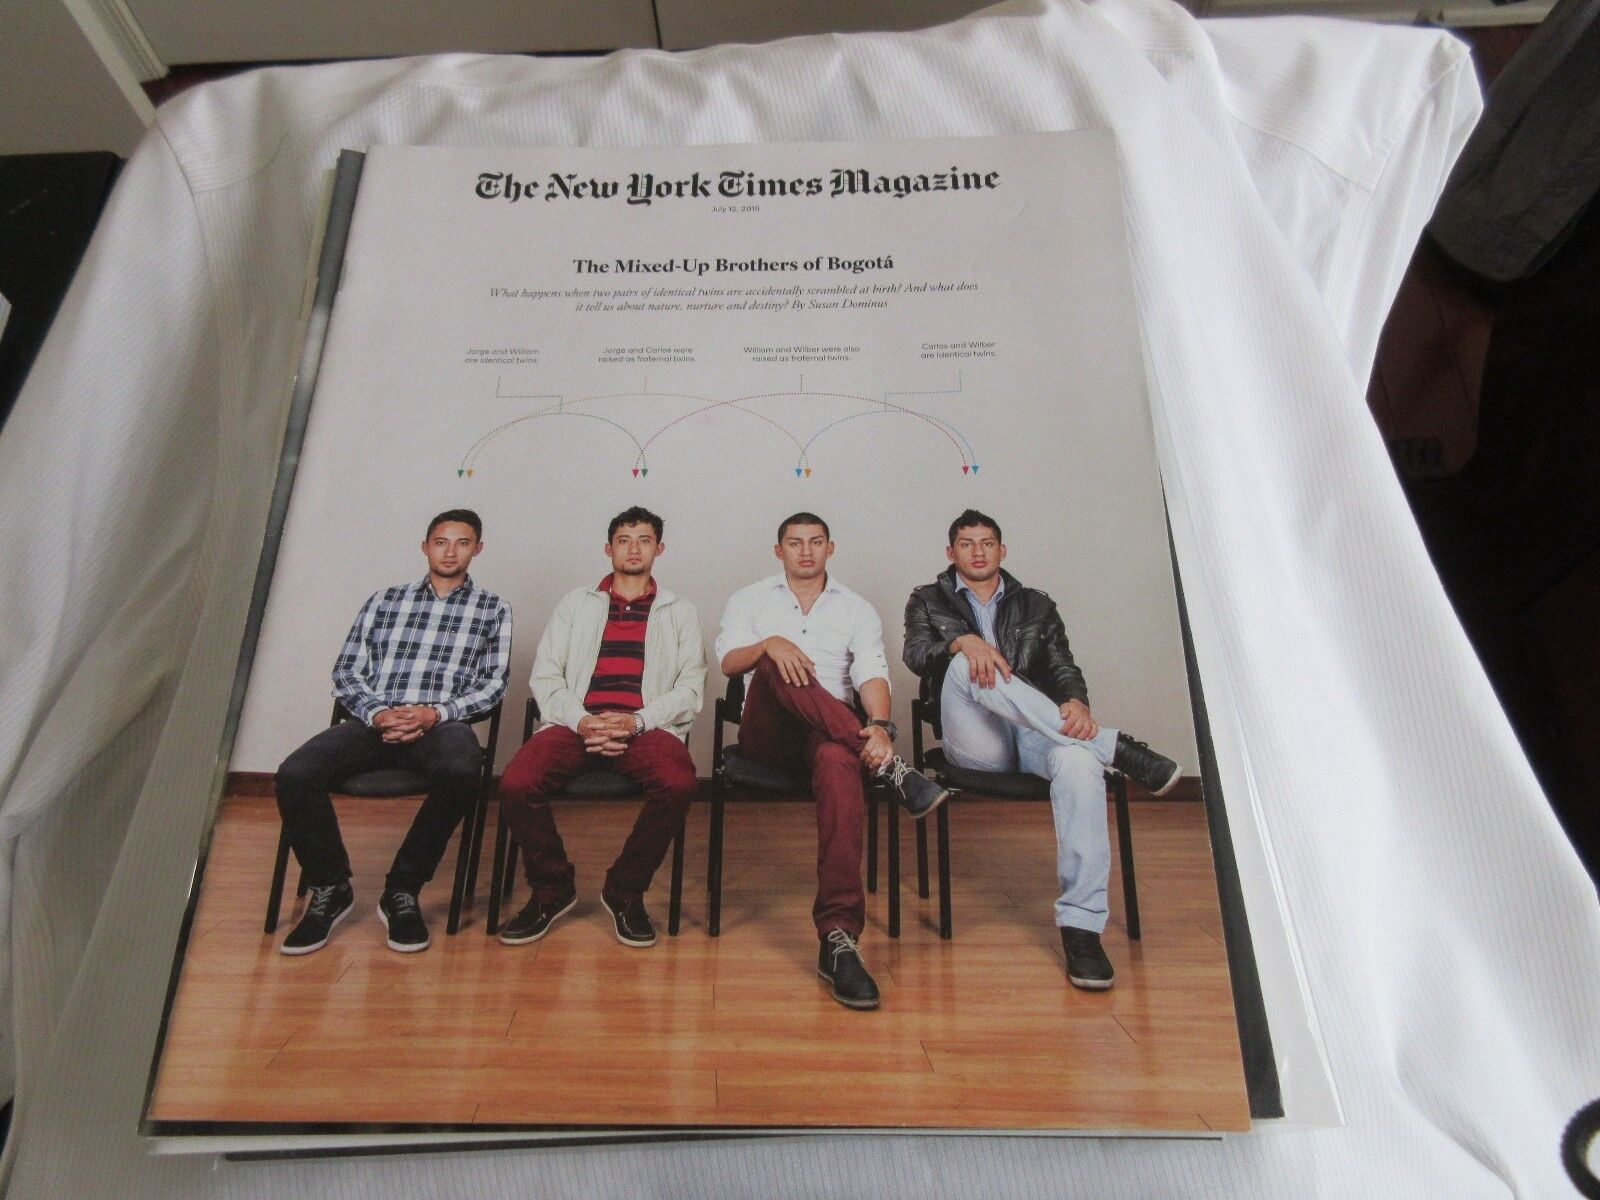 The Mixed Up Brothers of Bogota . The New York Times Ma